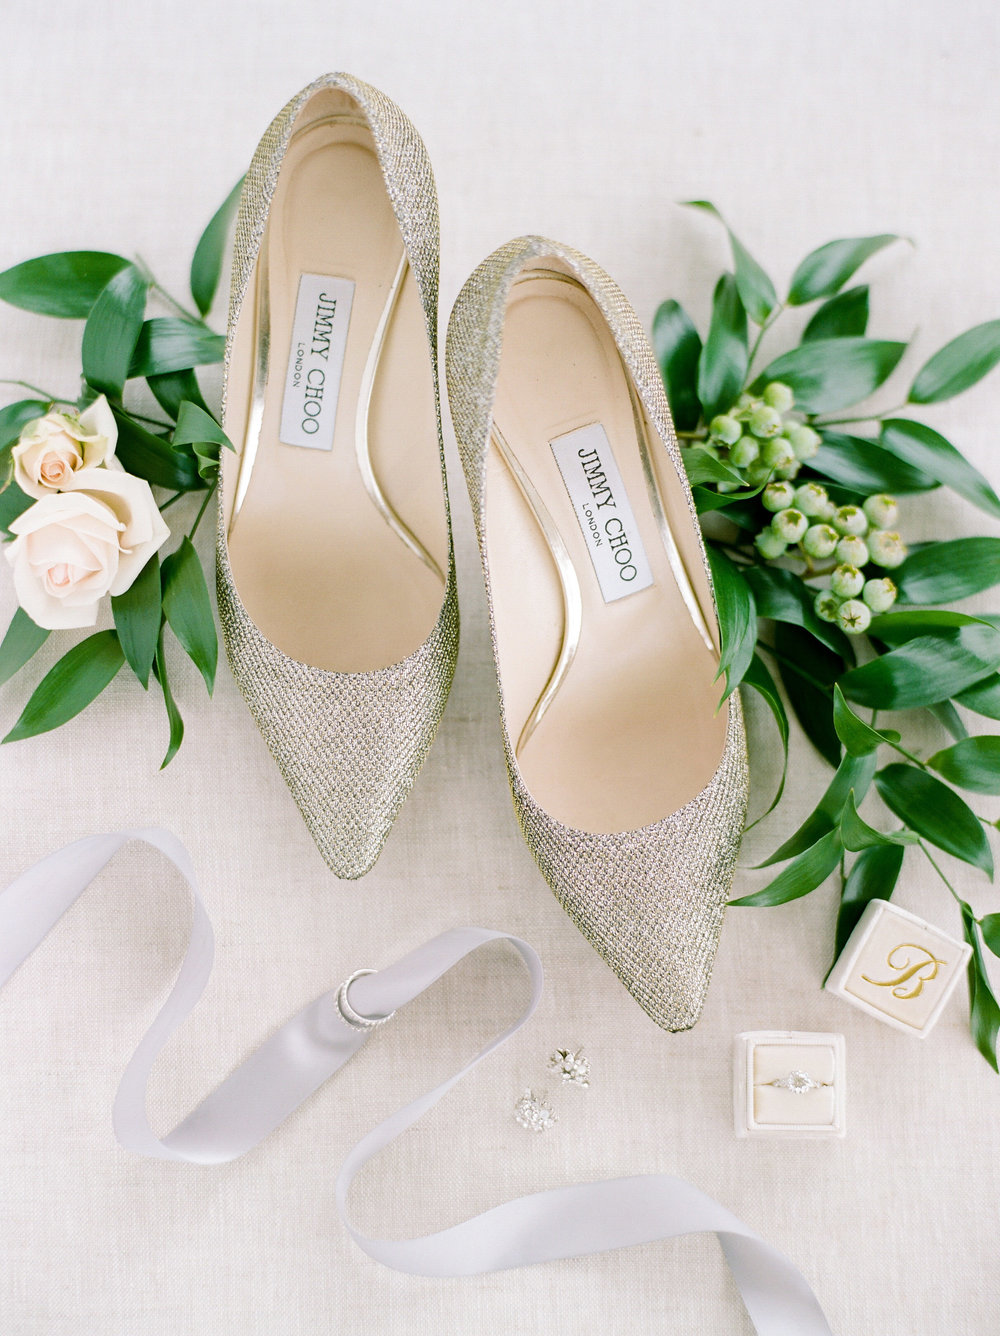 Fine-Art-Film-Houston-Wedding-Photographer-Best-Top-Luxury-Texas-Austin-Dallas-Destination-Dana-Fernandez-Photography-River-Oaks-Country-Club-South-Main-Baptist-Ceremony-Reception-Wedding-2.jpg